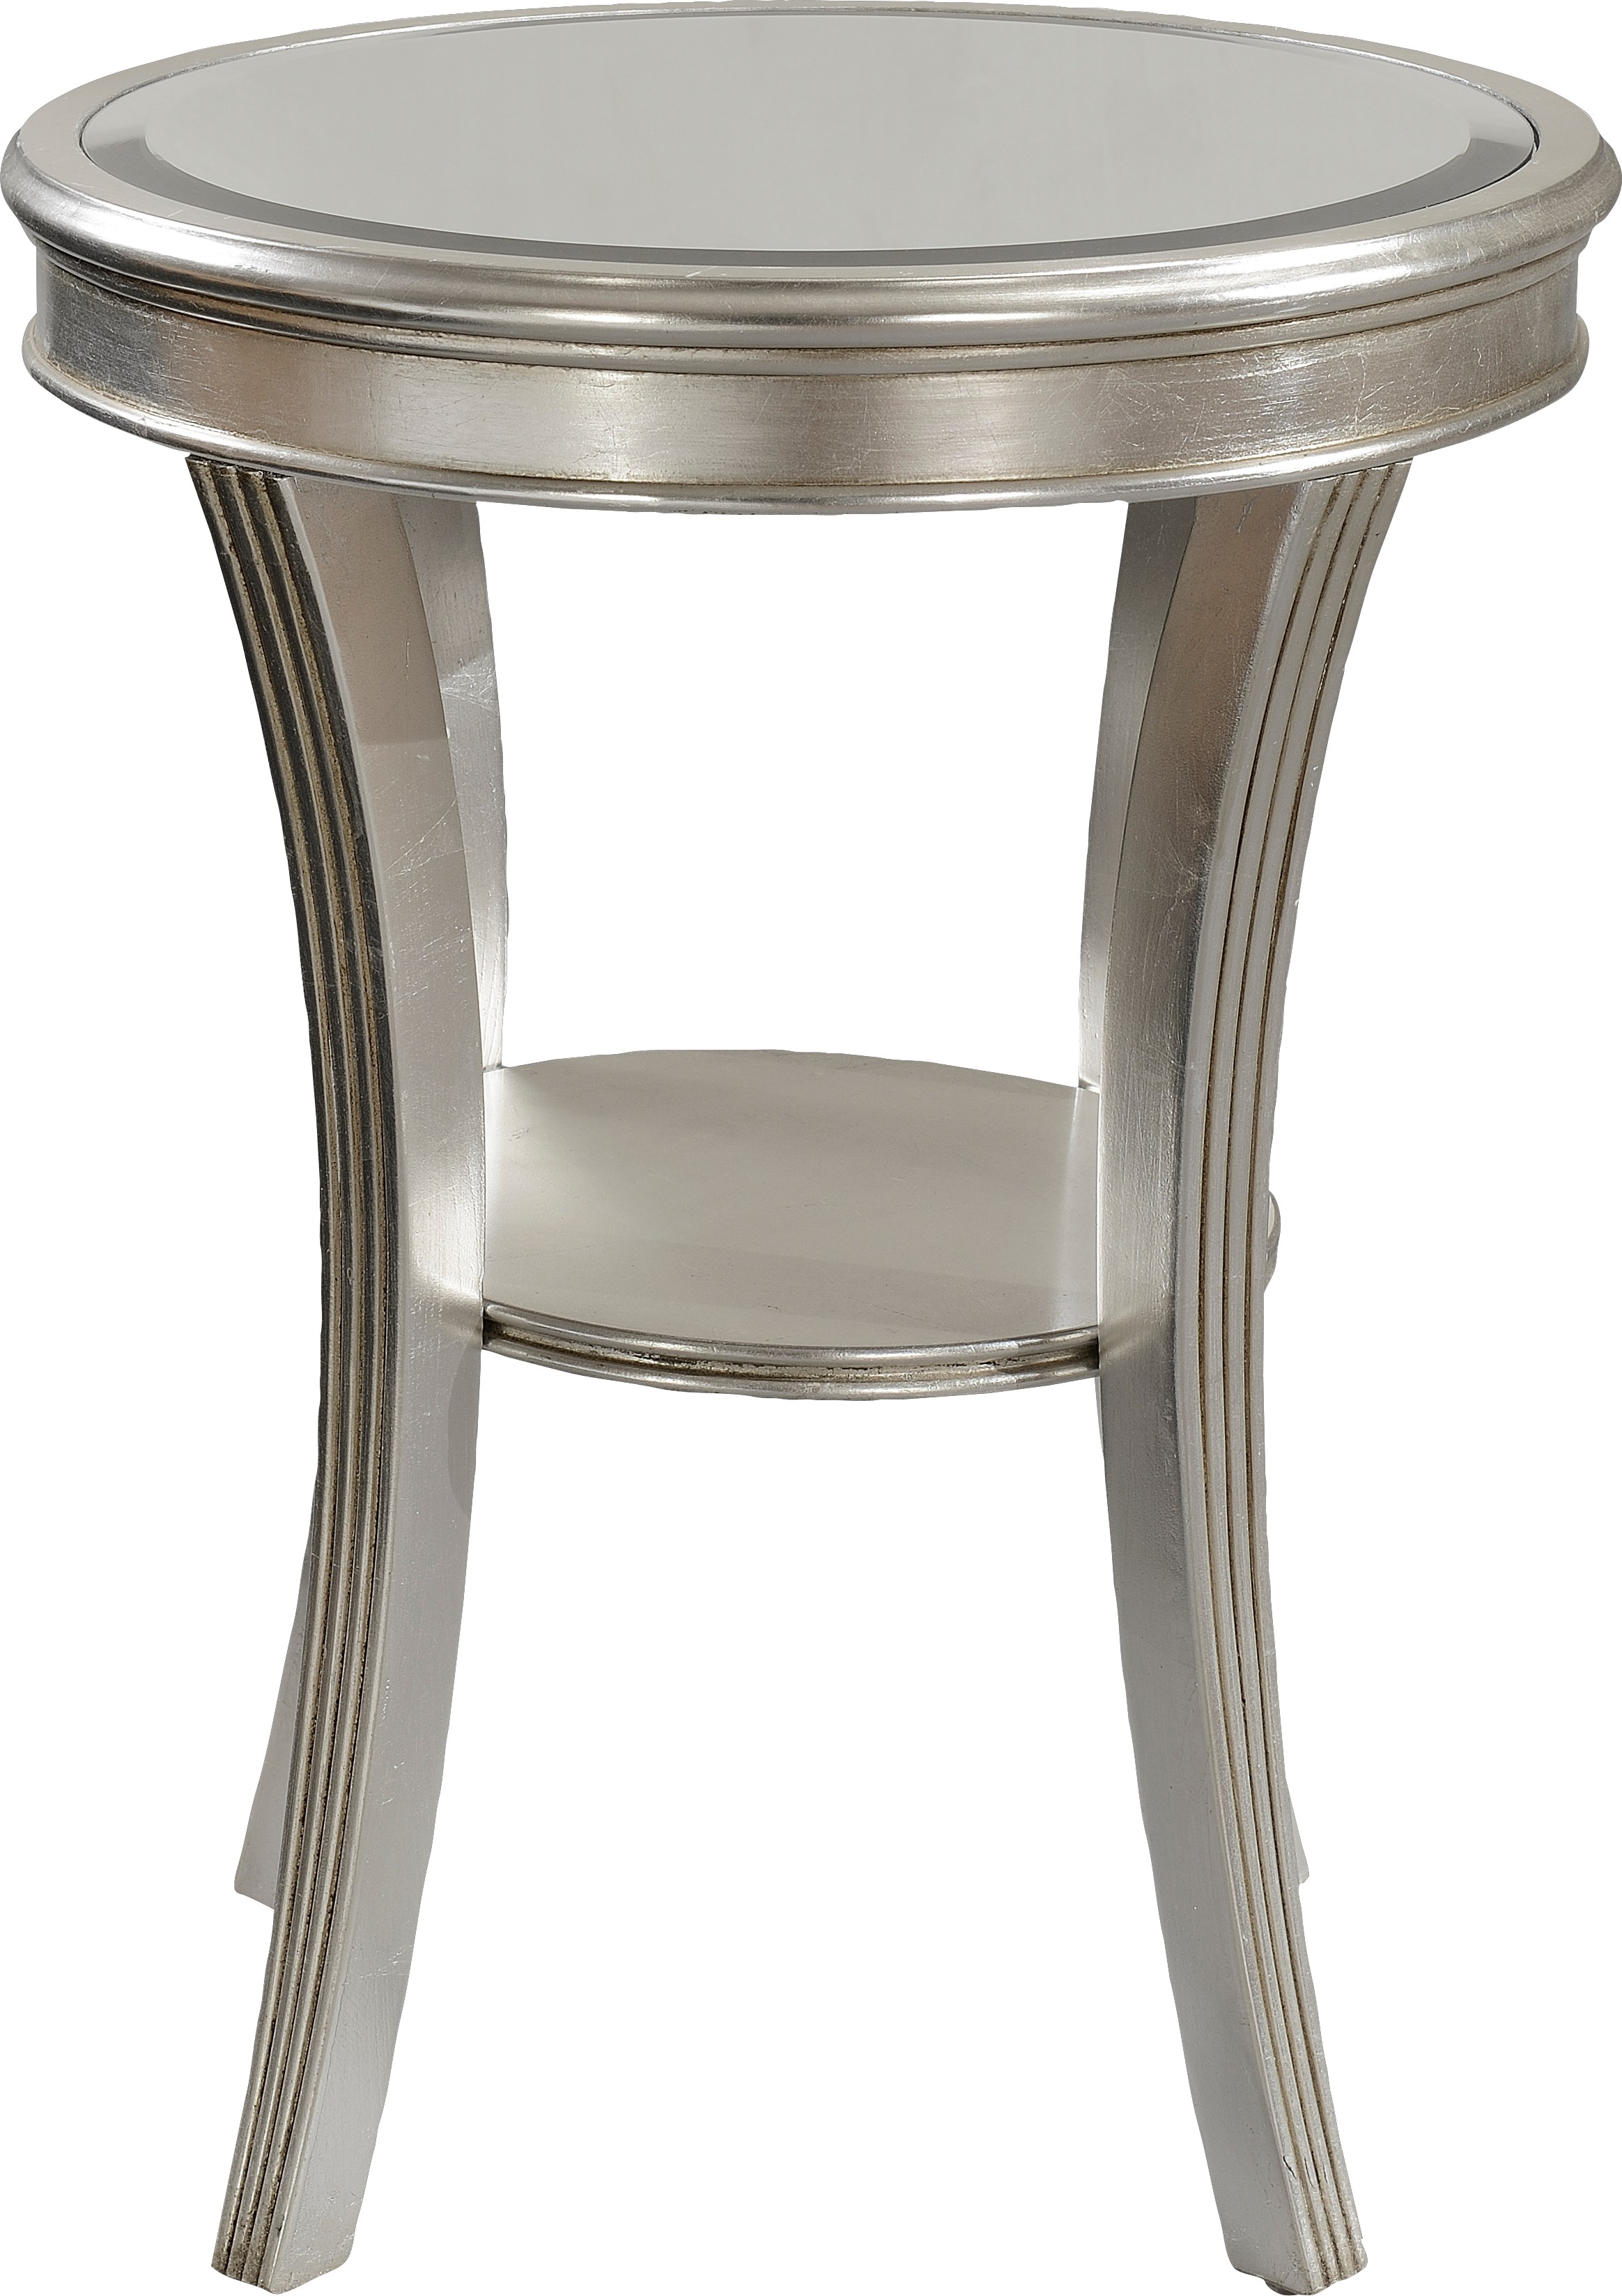 waterbury silver accent table tables colors grey recliner wyatt furniture wooden mats drawer side stand alone umbrella room essentials white nautical themed decorative chairs for